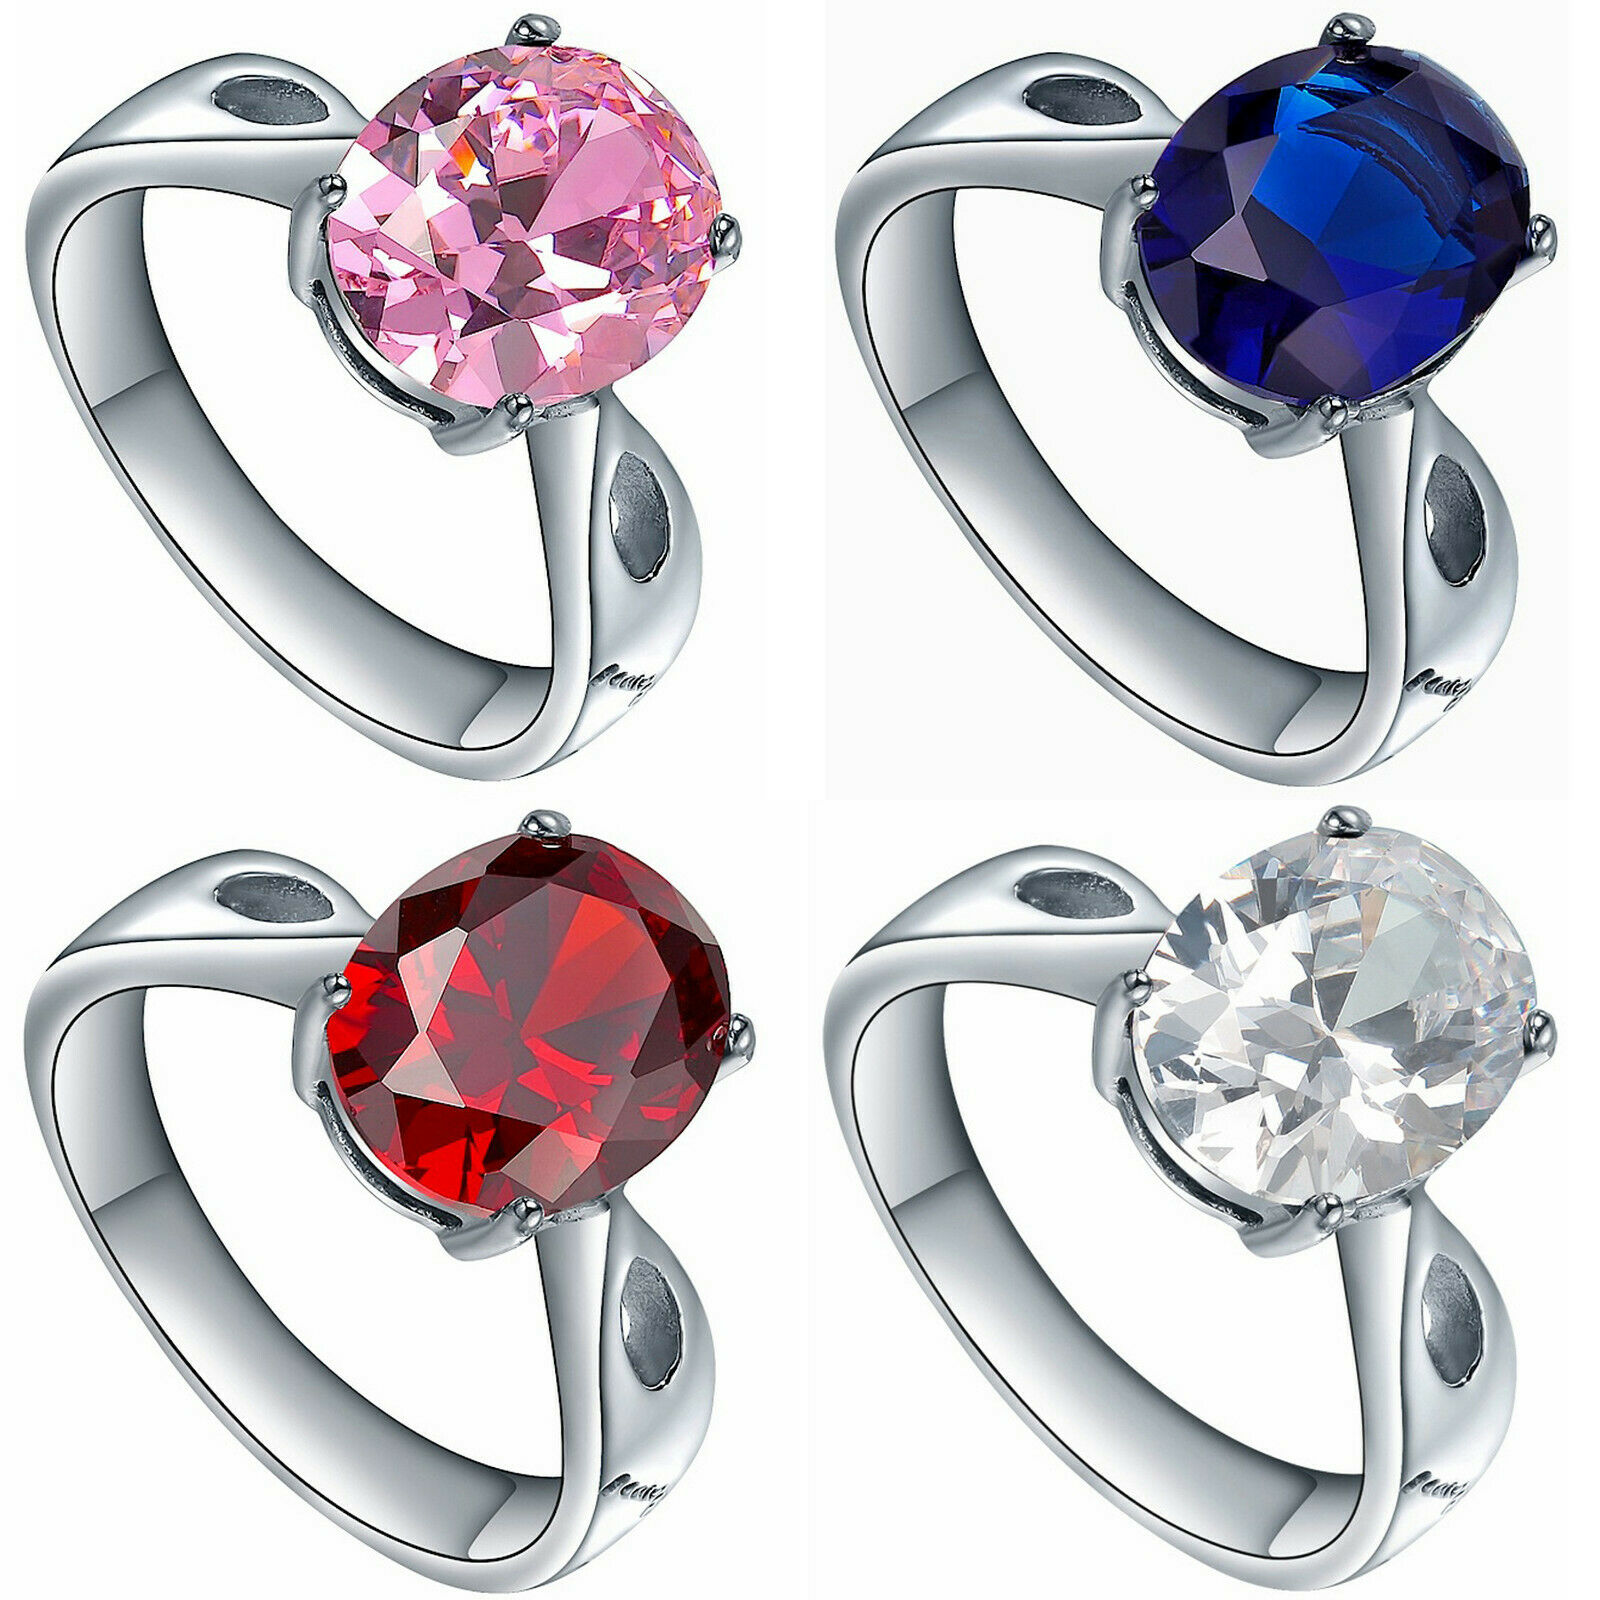 Stainless Steel Oval Cubic Zirconia CZ Solitaire Women's Engagement Wedding Ring Fashion Jewelry